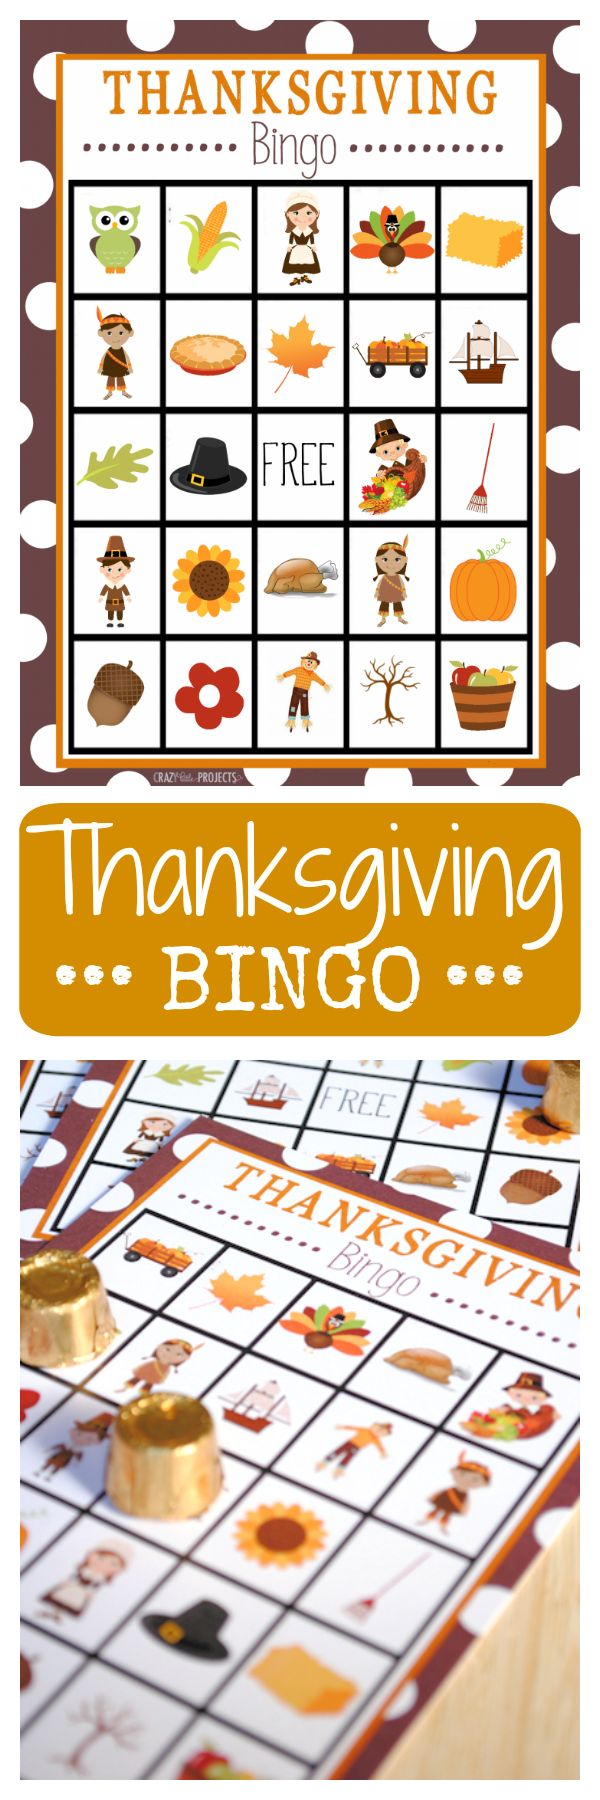 How easy would this be?!? A grid & your favorite elements. This would make a fun game to play on Thanksgiving!